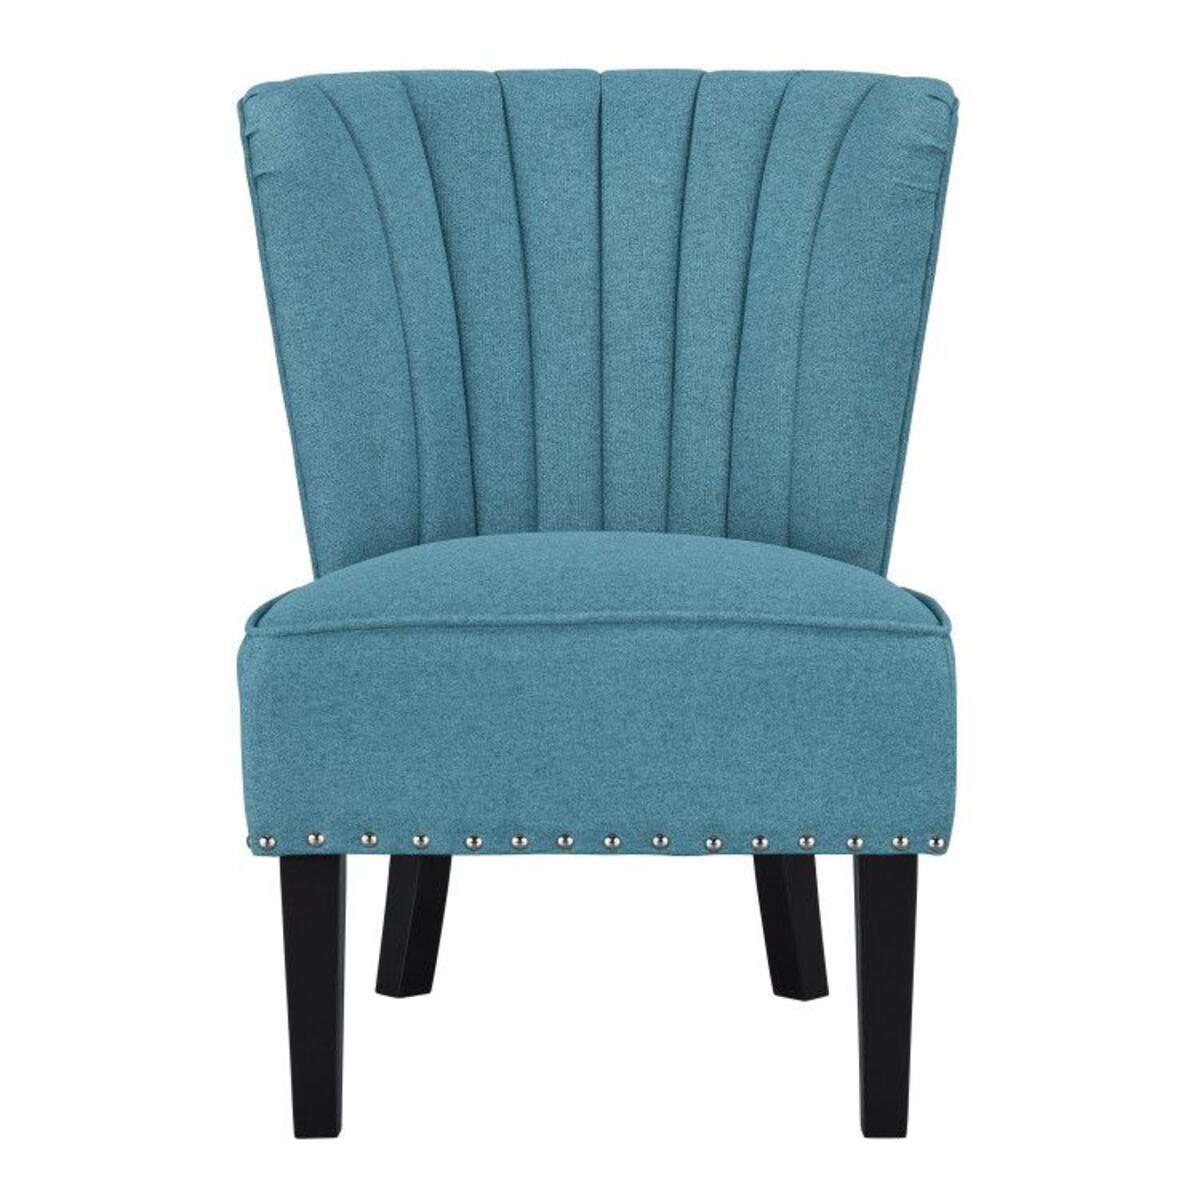 Emporium Accent Chair, Aegean